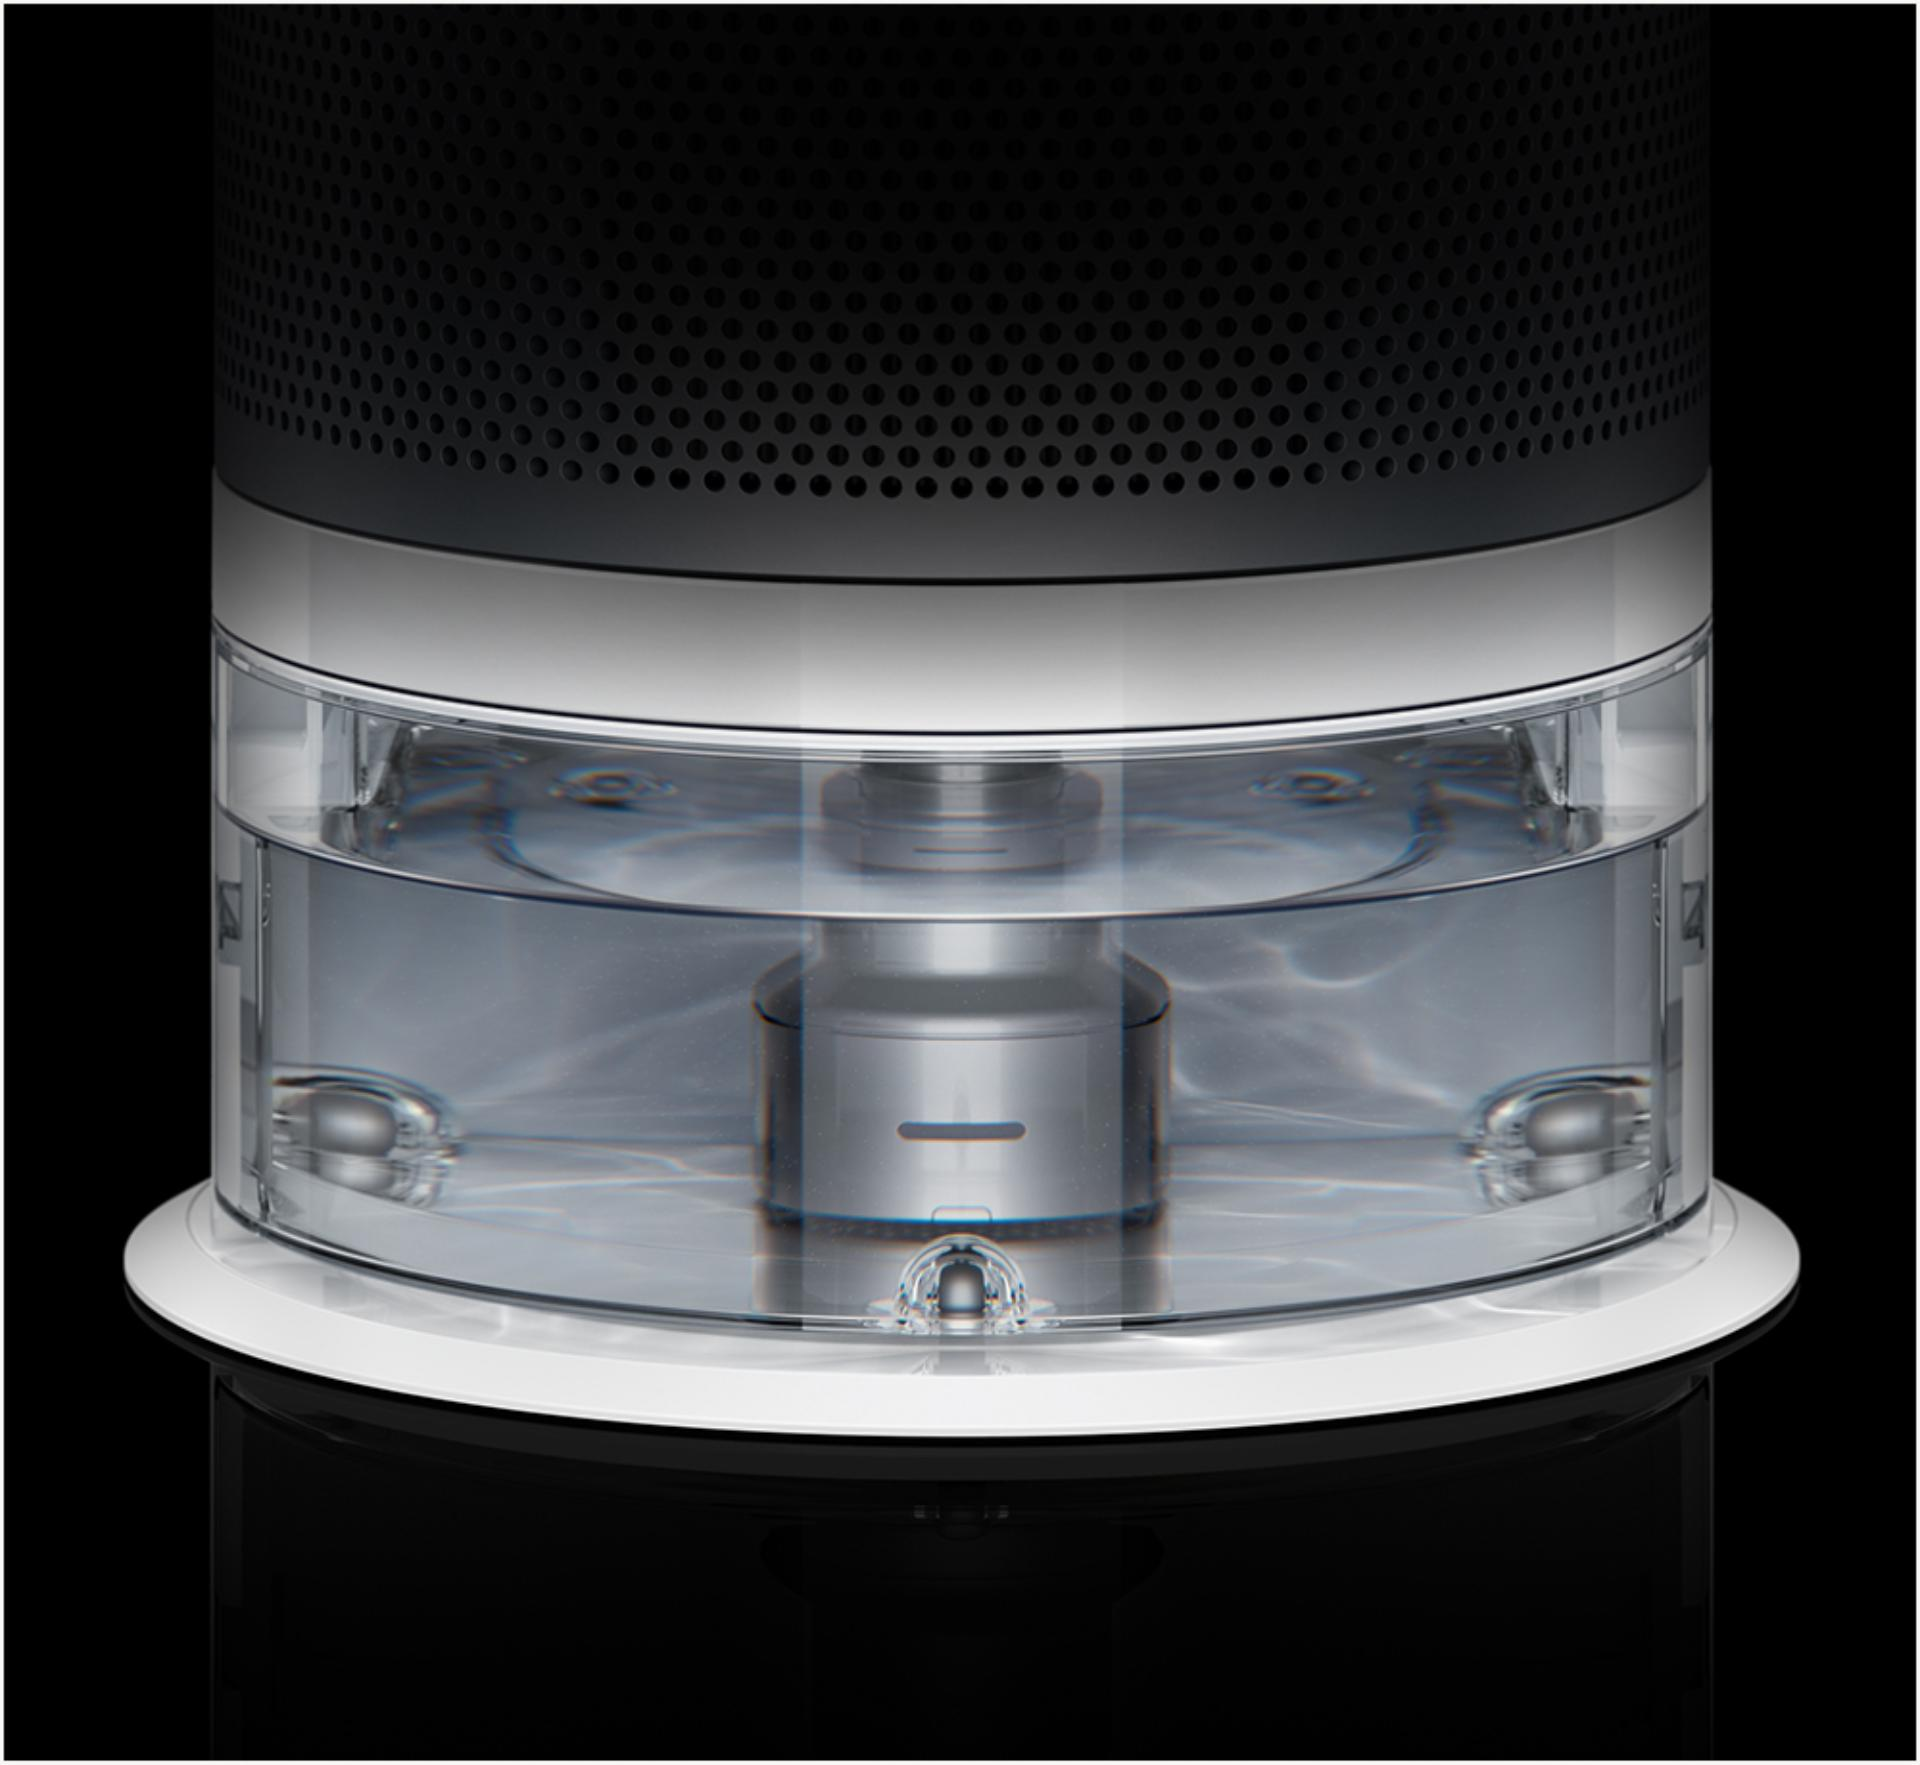 The Dyson purifier humidifier fan water tank